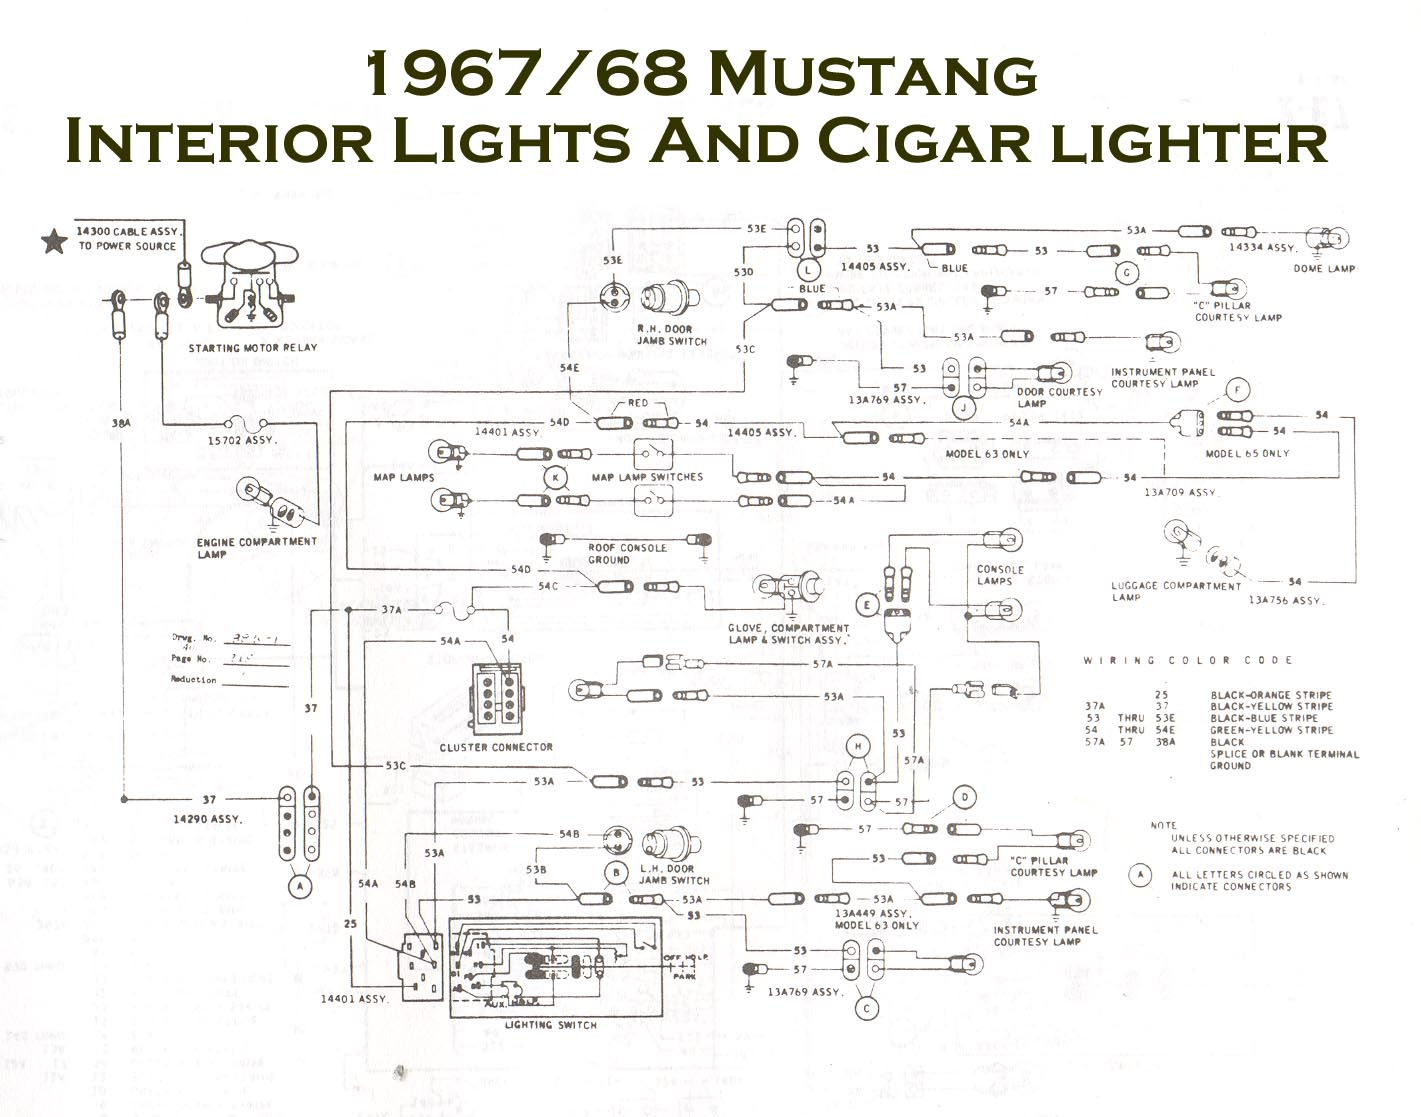 Dash Wiring Diagram 1968 Archive Of Automotive 4t65e Vintage Mustang Diagrams Rh Midlife66 Com